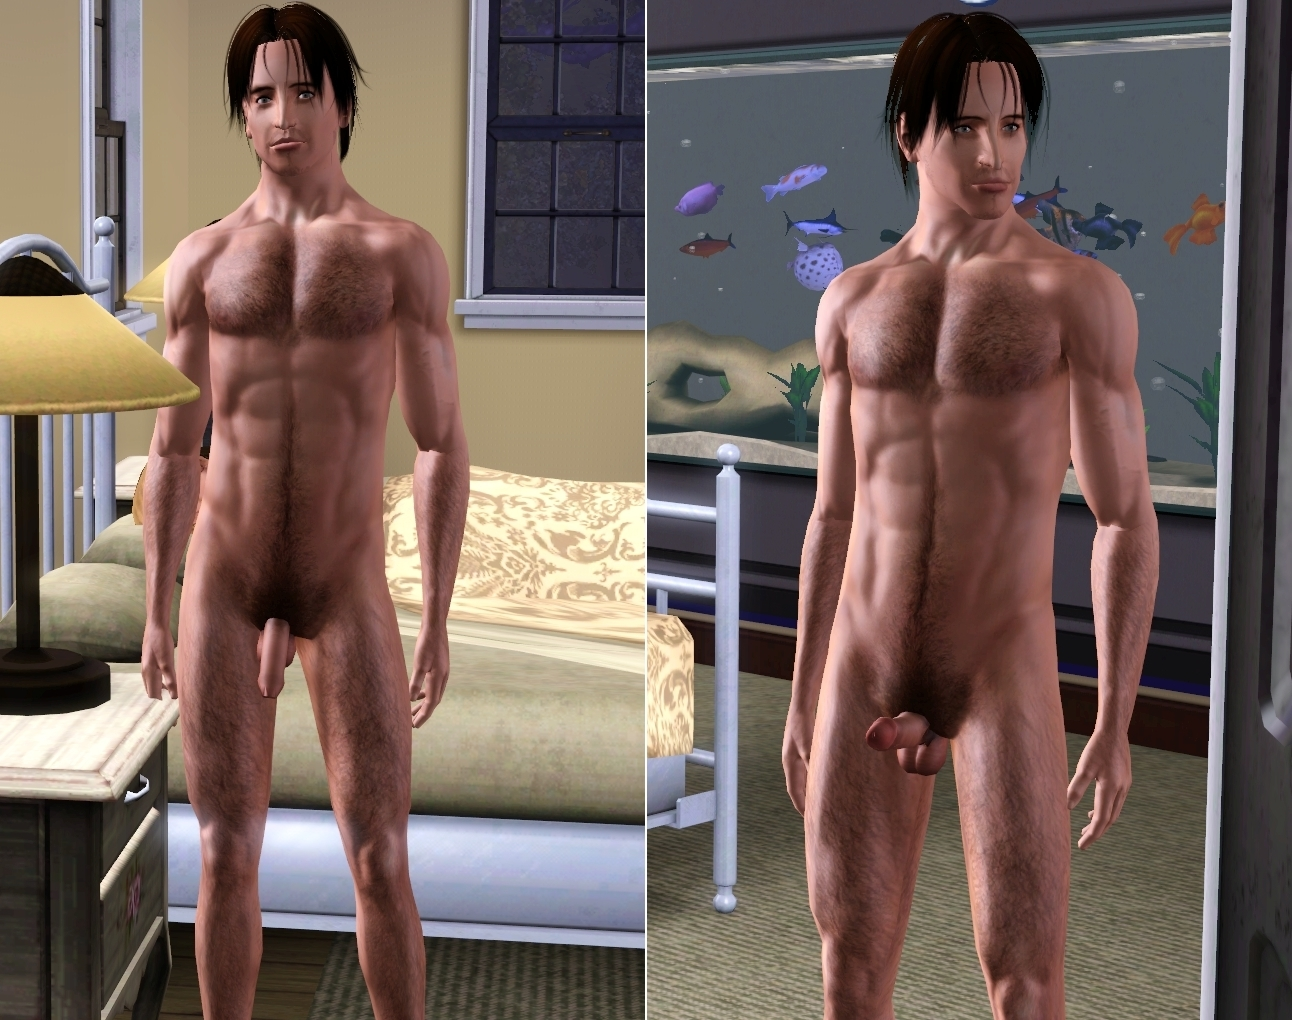 The sims 3 naked skins and sex  erotic pics